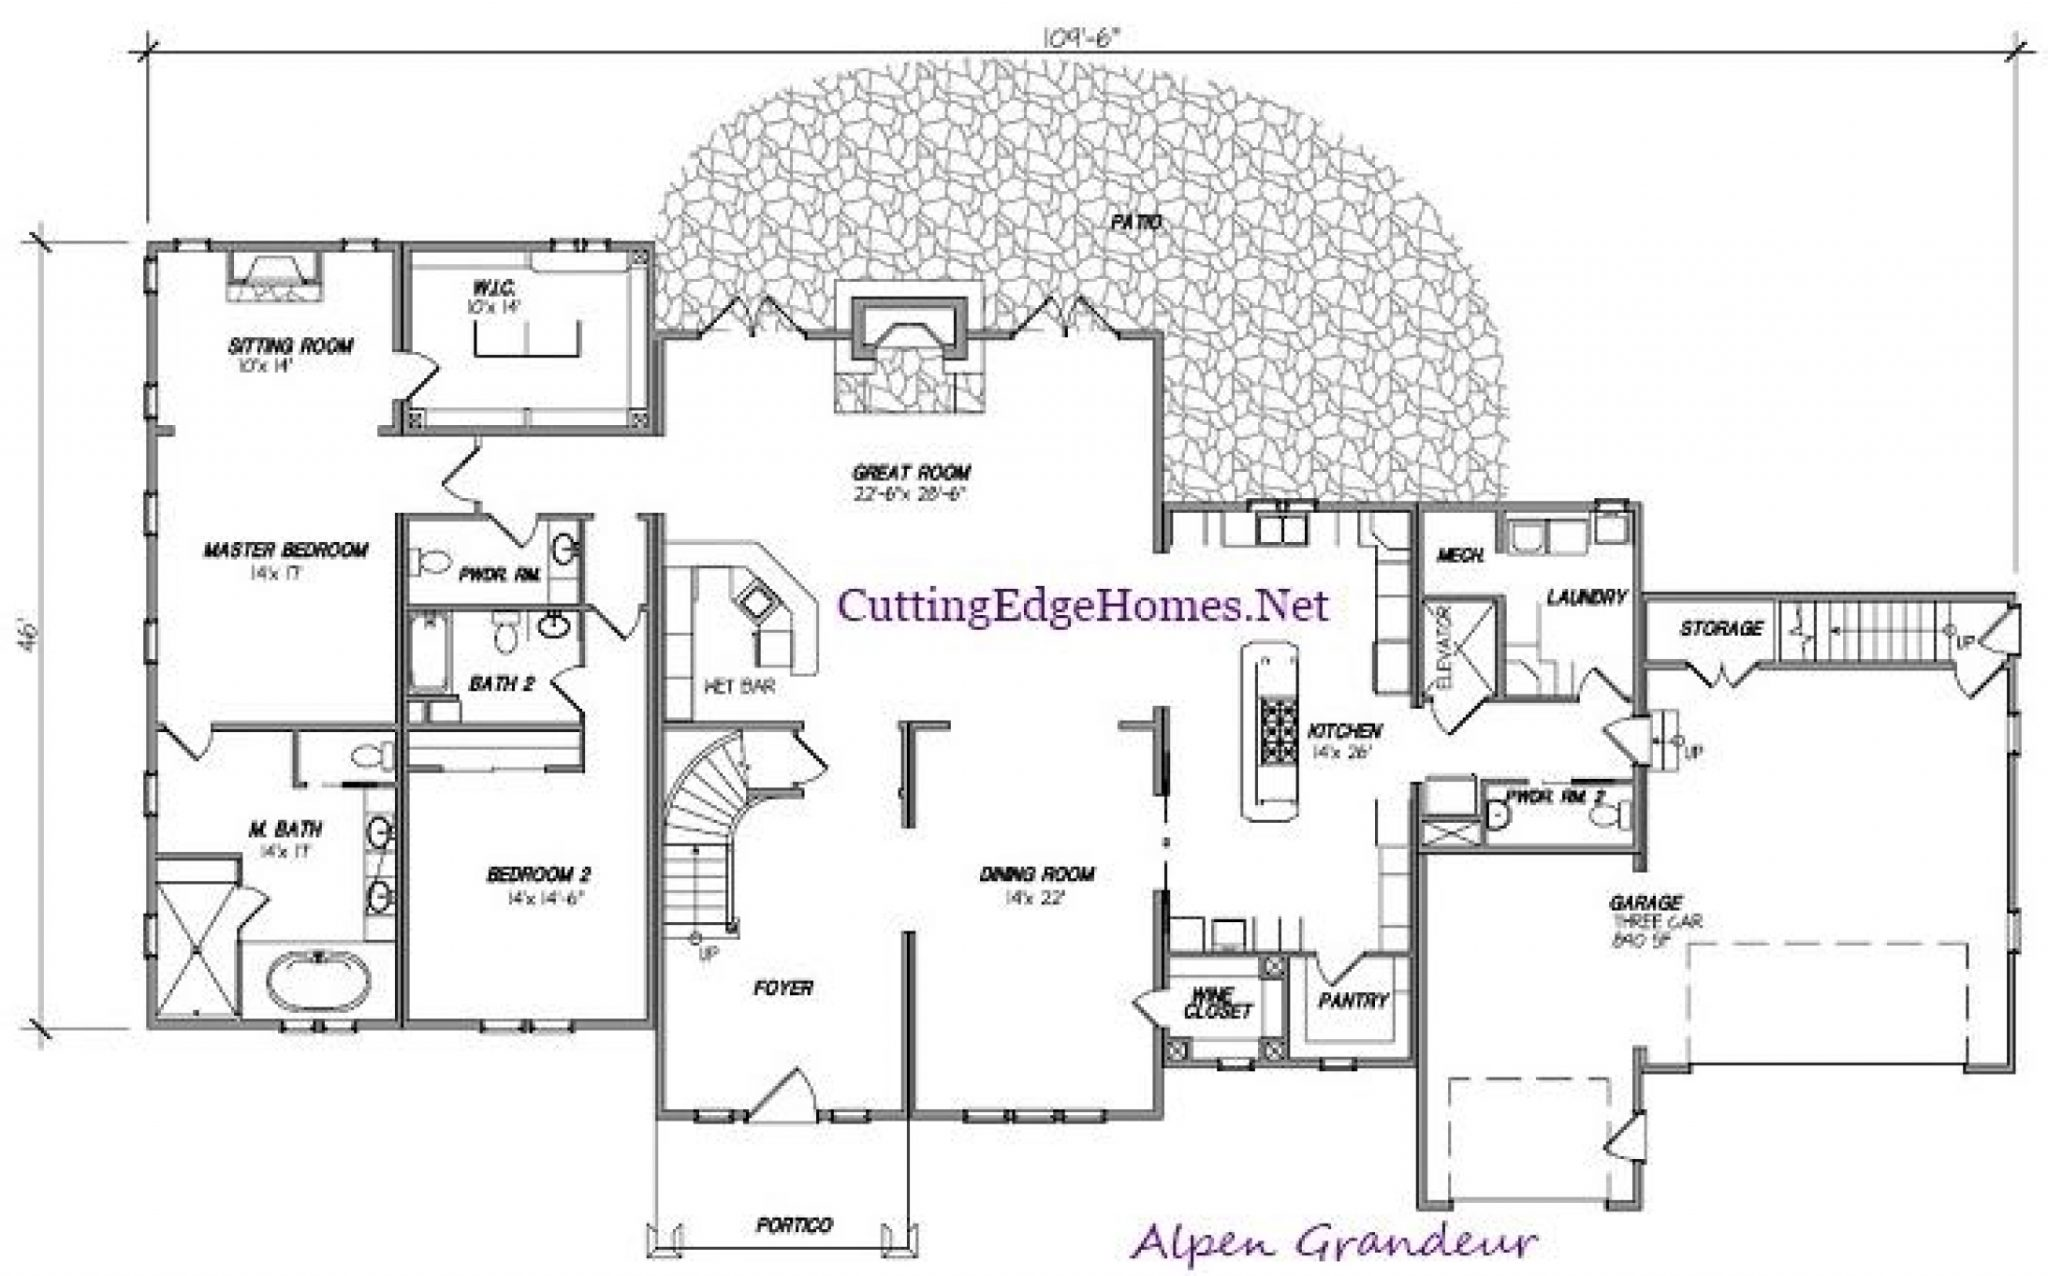 Floor Plan With Elevation And Perspective Pdf : Modular homes the alpen grandeur floor plan and elevation pdf